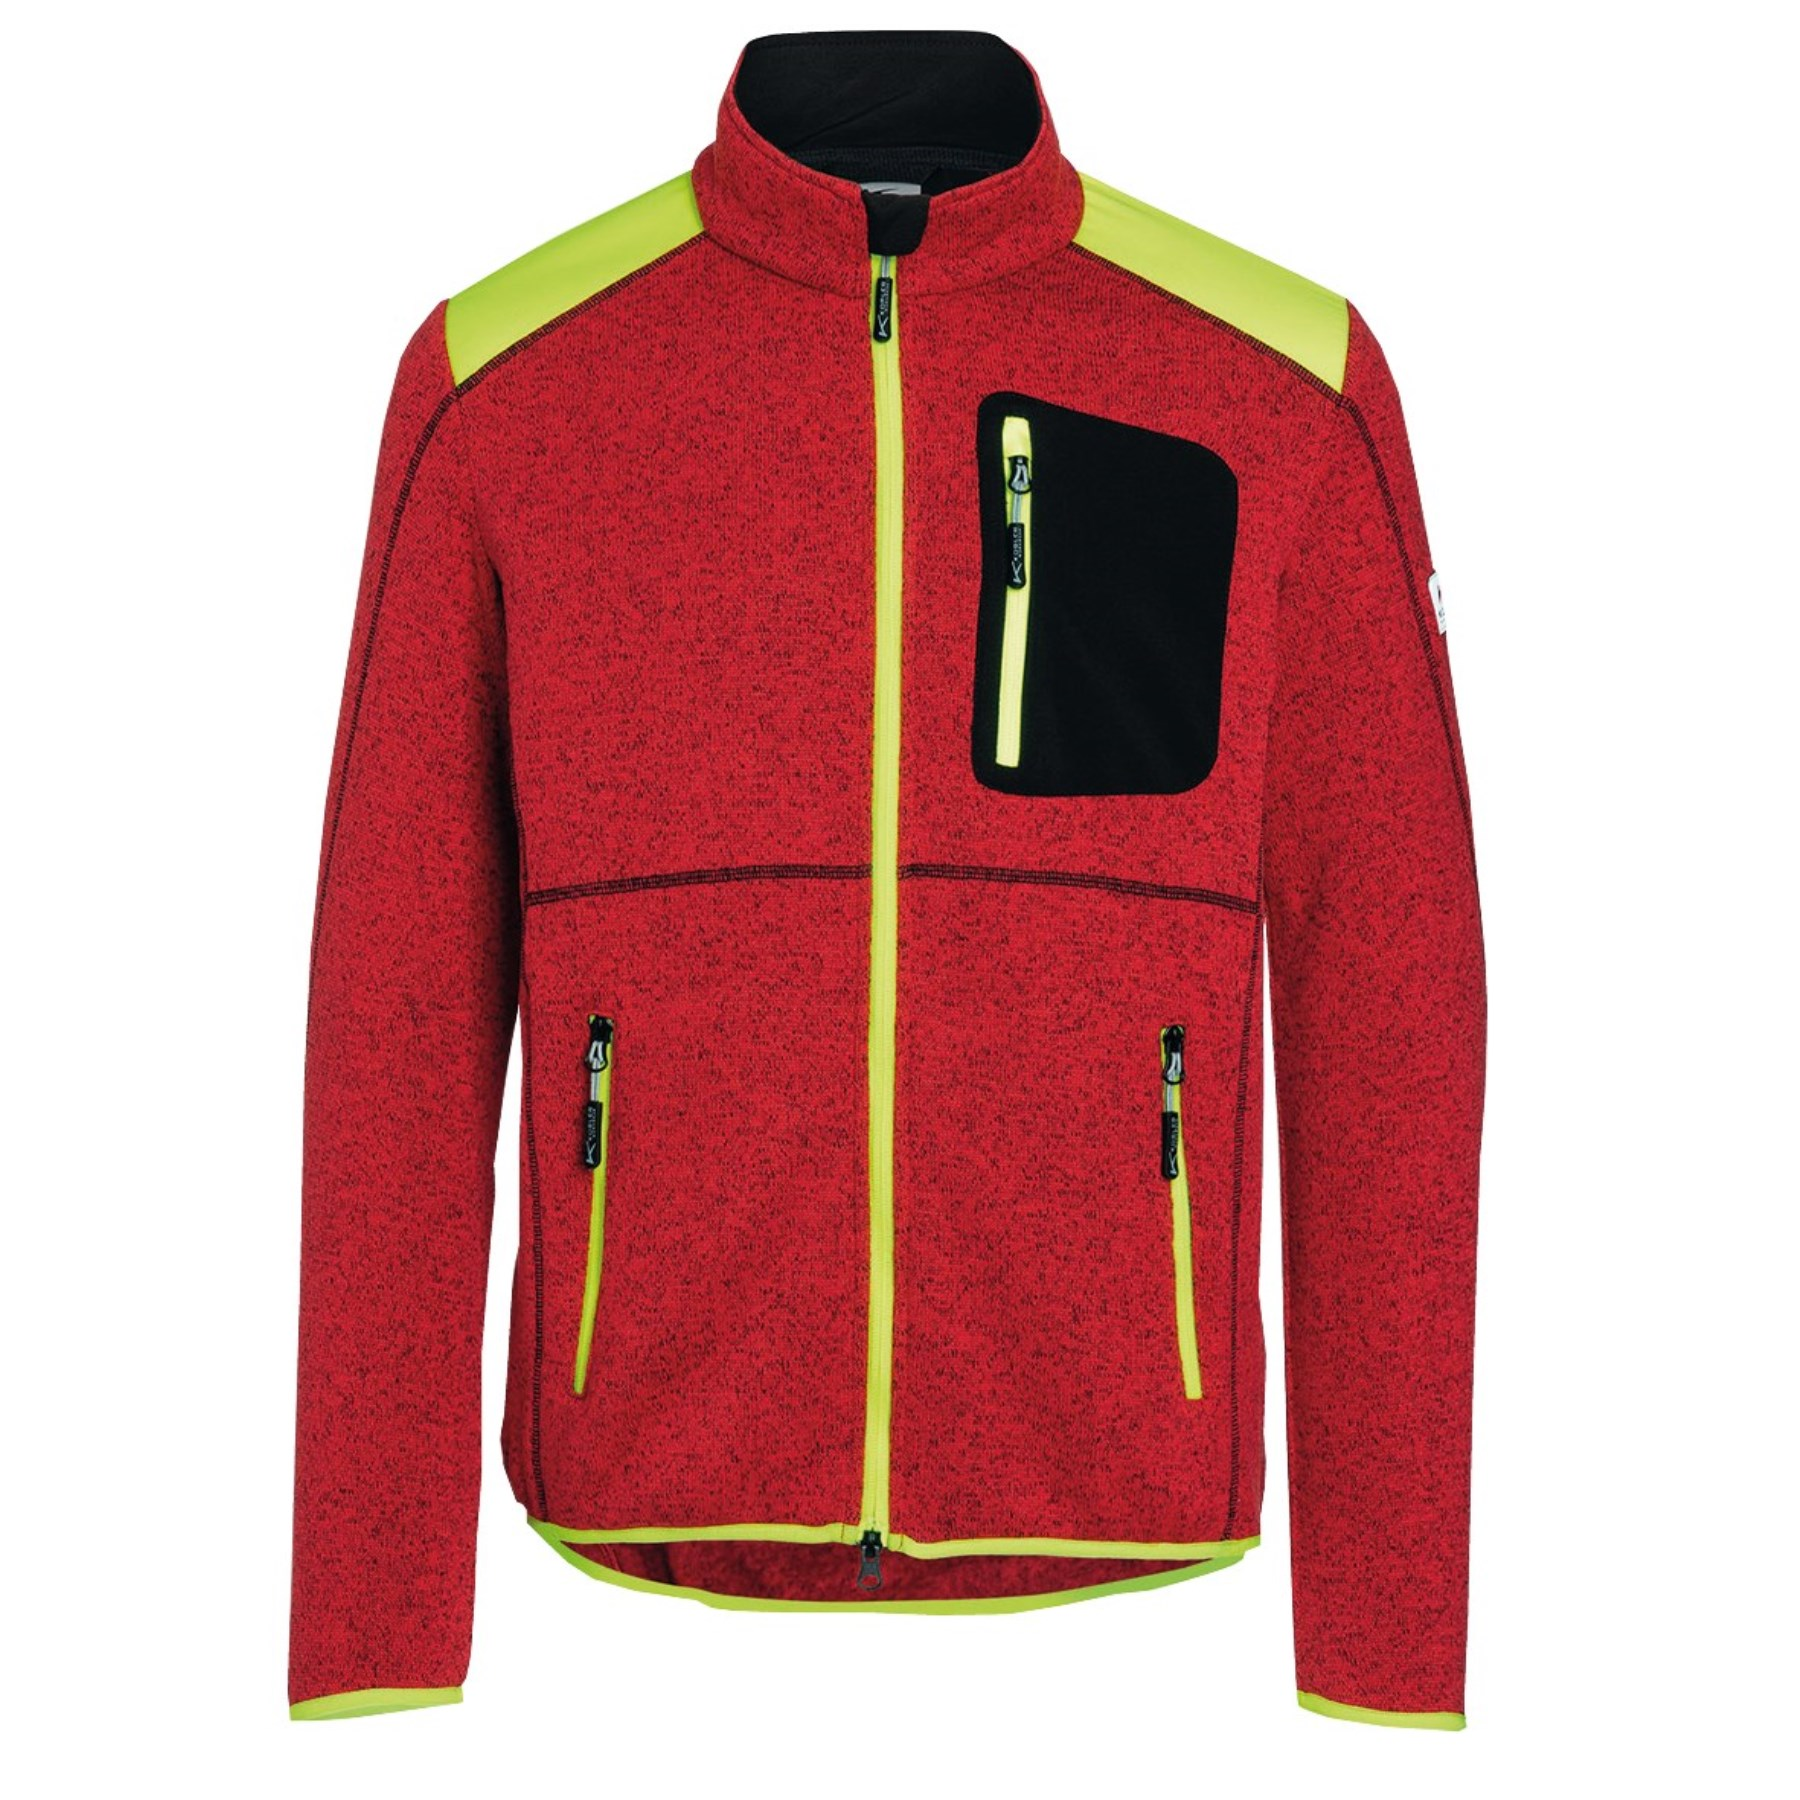 1253879 - Strickjacke Light Forest Gr.S rot/warngelb